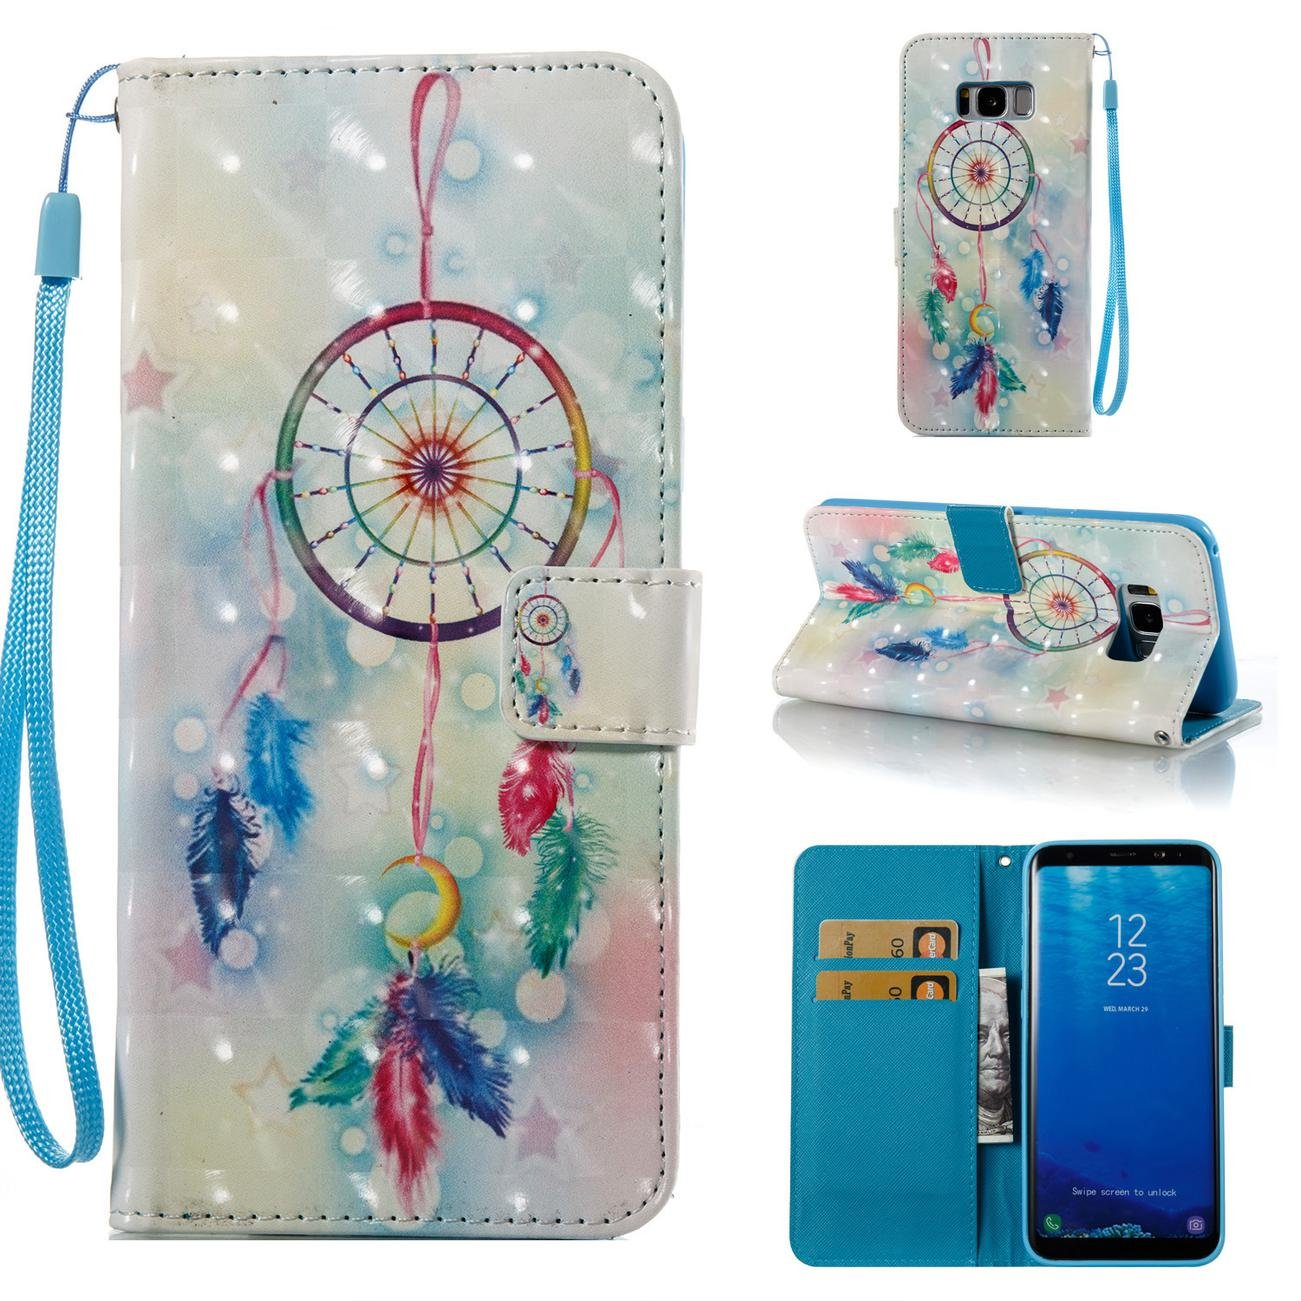 Firefish Galaxy S8 Plus Case,Durable PU Wallet Cover Kickstand Case Credit Card Holder Flip Folio Shell with Strap with Magnetic Closure Birthday Gift Christmas Halloween for Samsung Galaxy S8 Plus